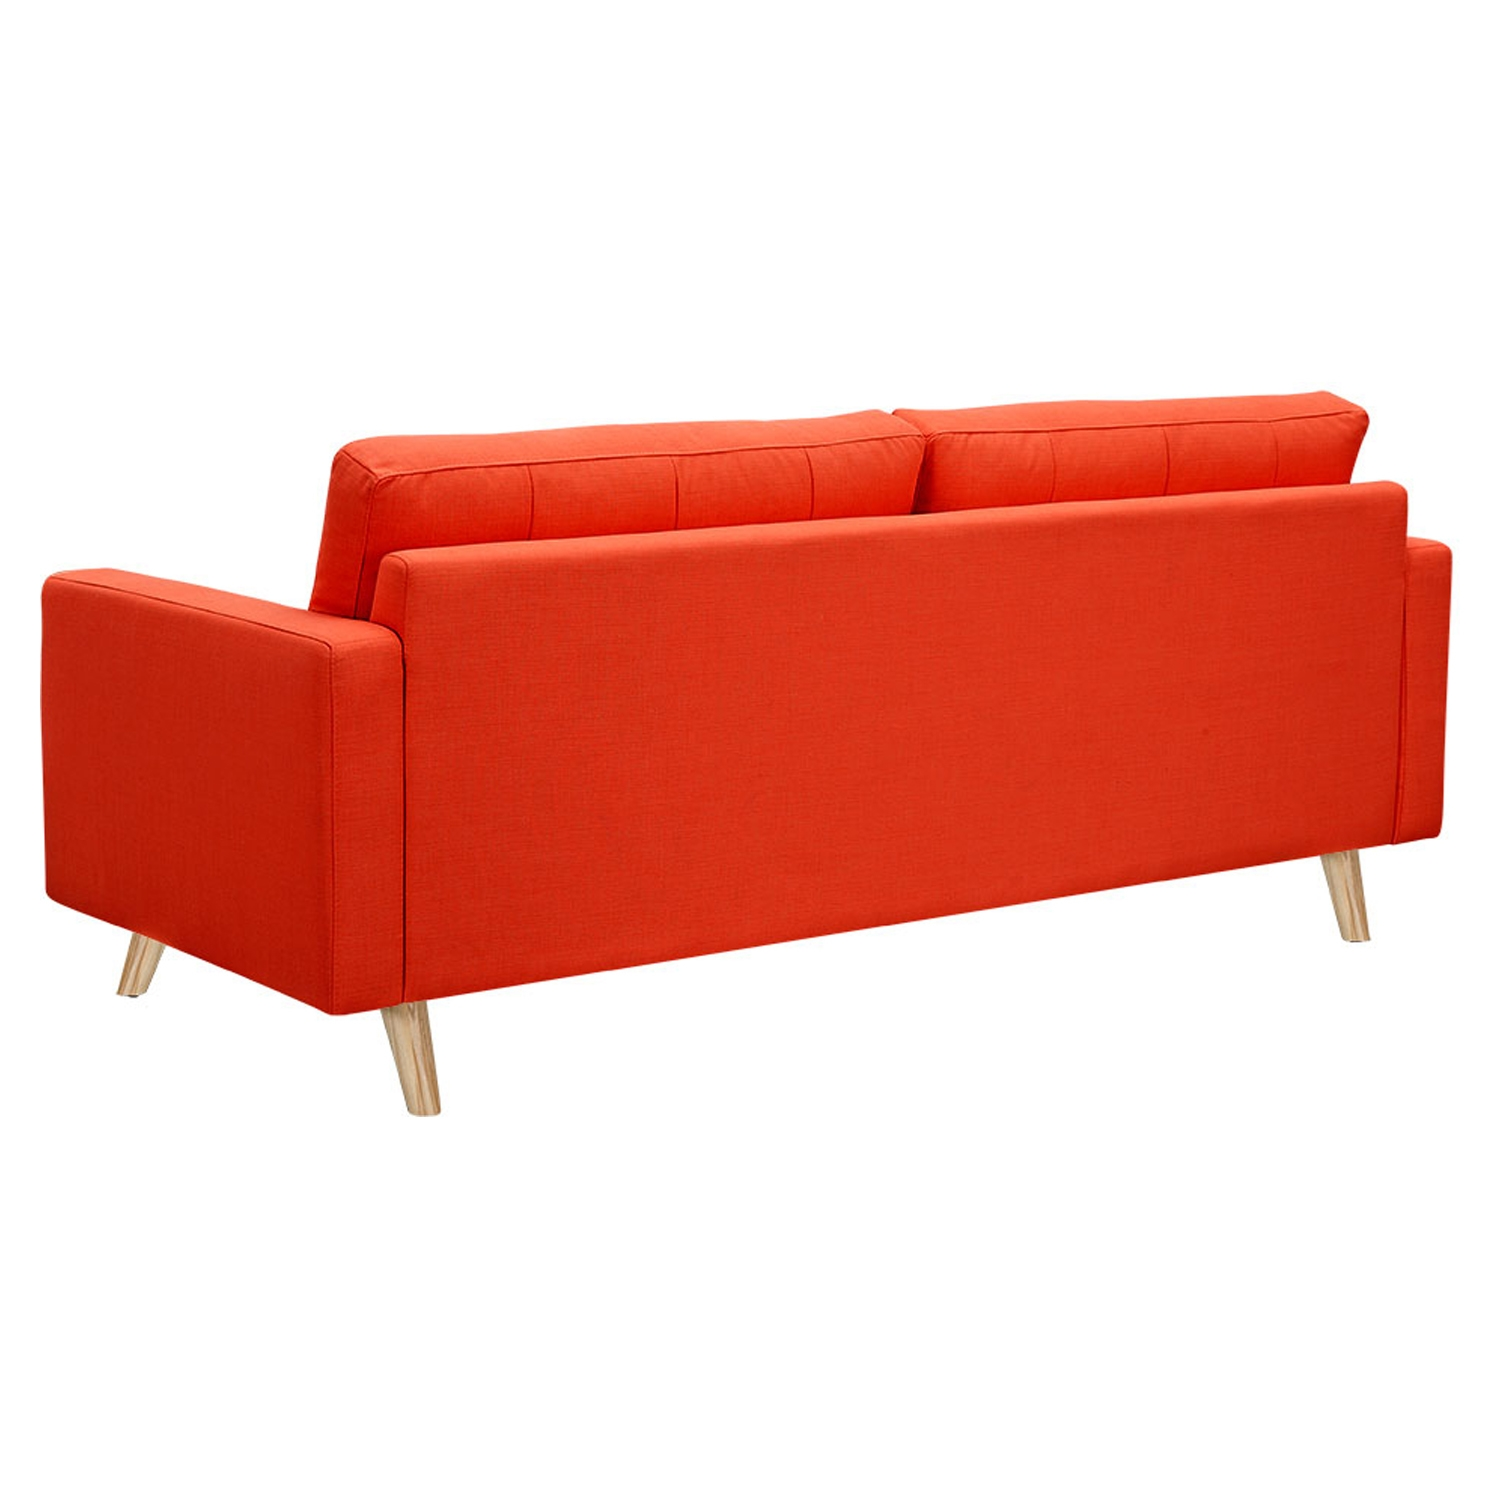 Uma Sofa - Retro Orange, Button Tufted - NYEK-223352